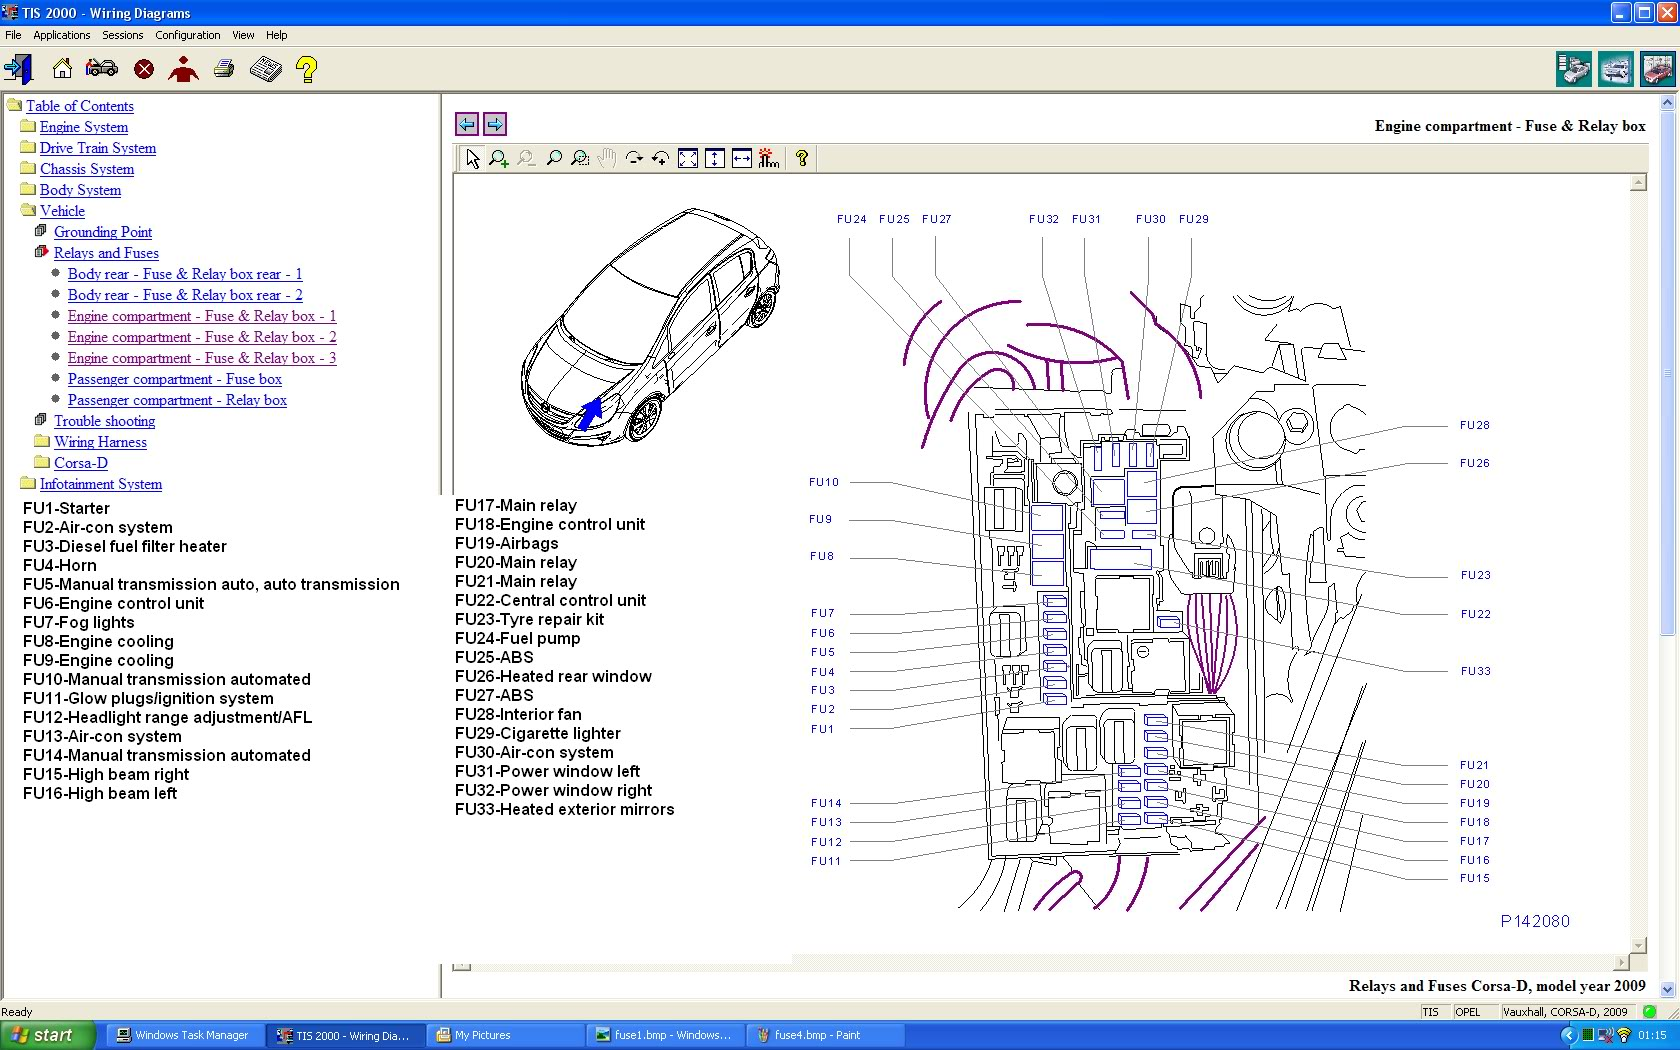 Excellent Fuse Box In Opel Corsa Wiring Diagram Data Wiring Cloud Eachirenstrafr09Org